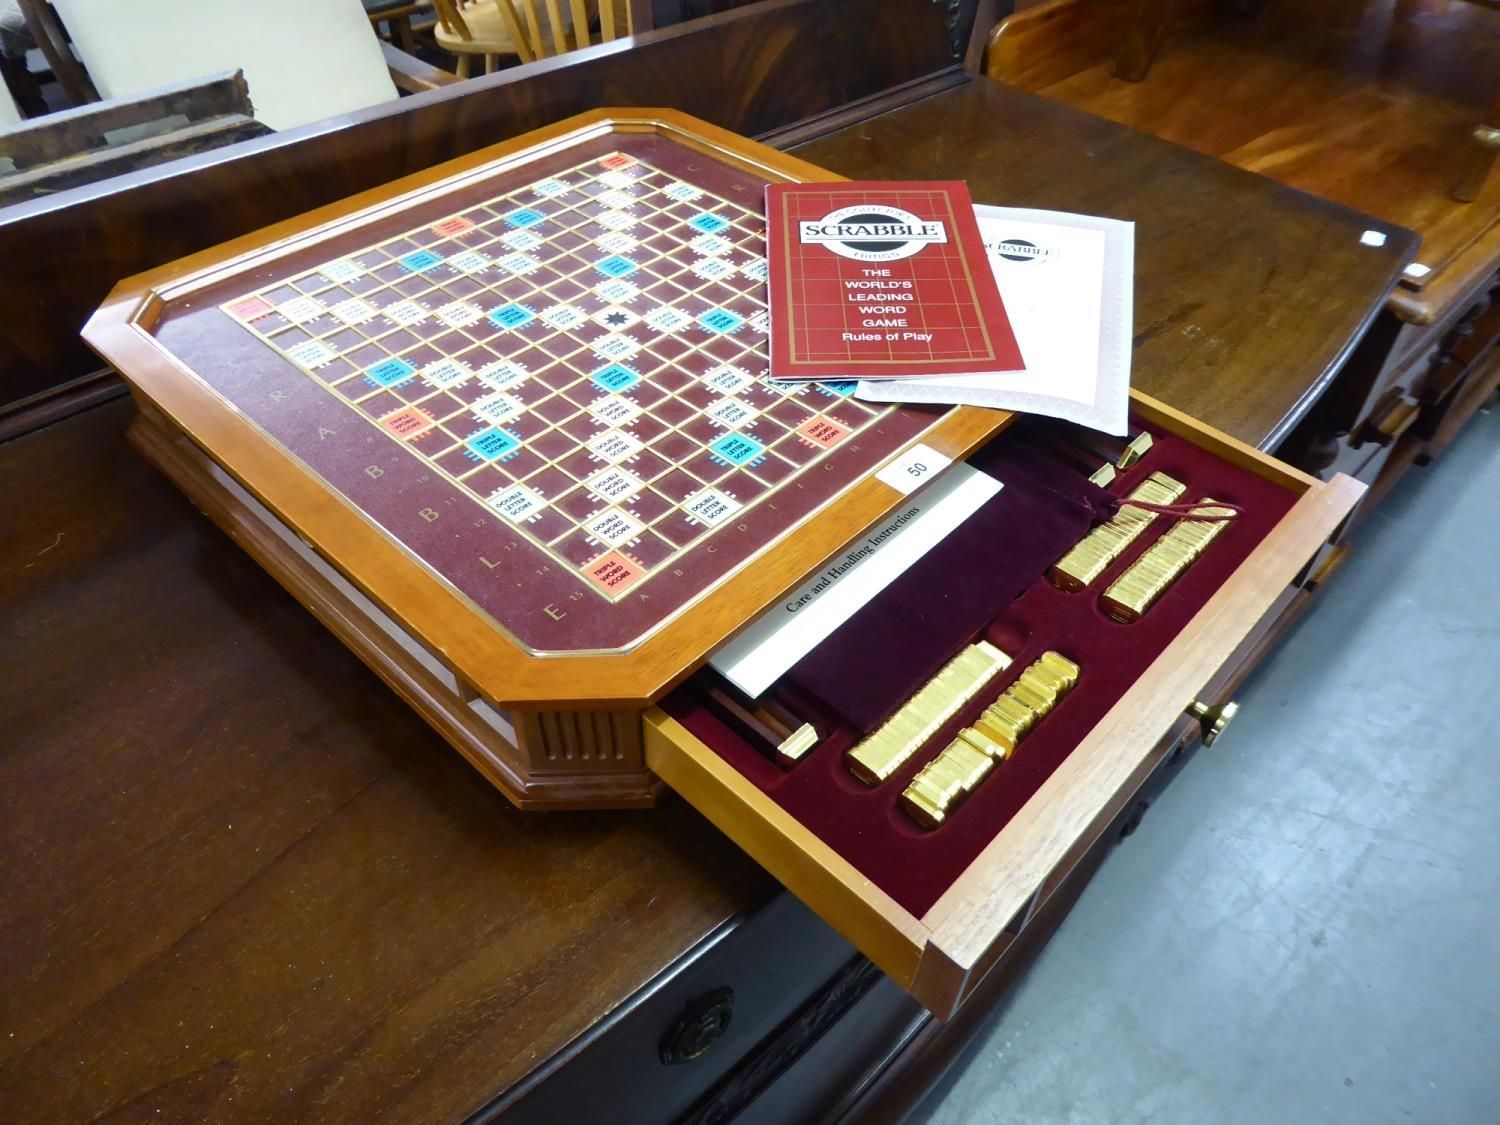 Lot 50 - A DELUXE SCRABBLE COLLECTORS EDITION BOARD GAME, COMPLETE WITH 22CT GOLD PLATED LETTER TILES AND